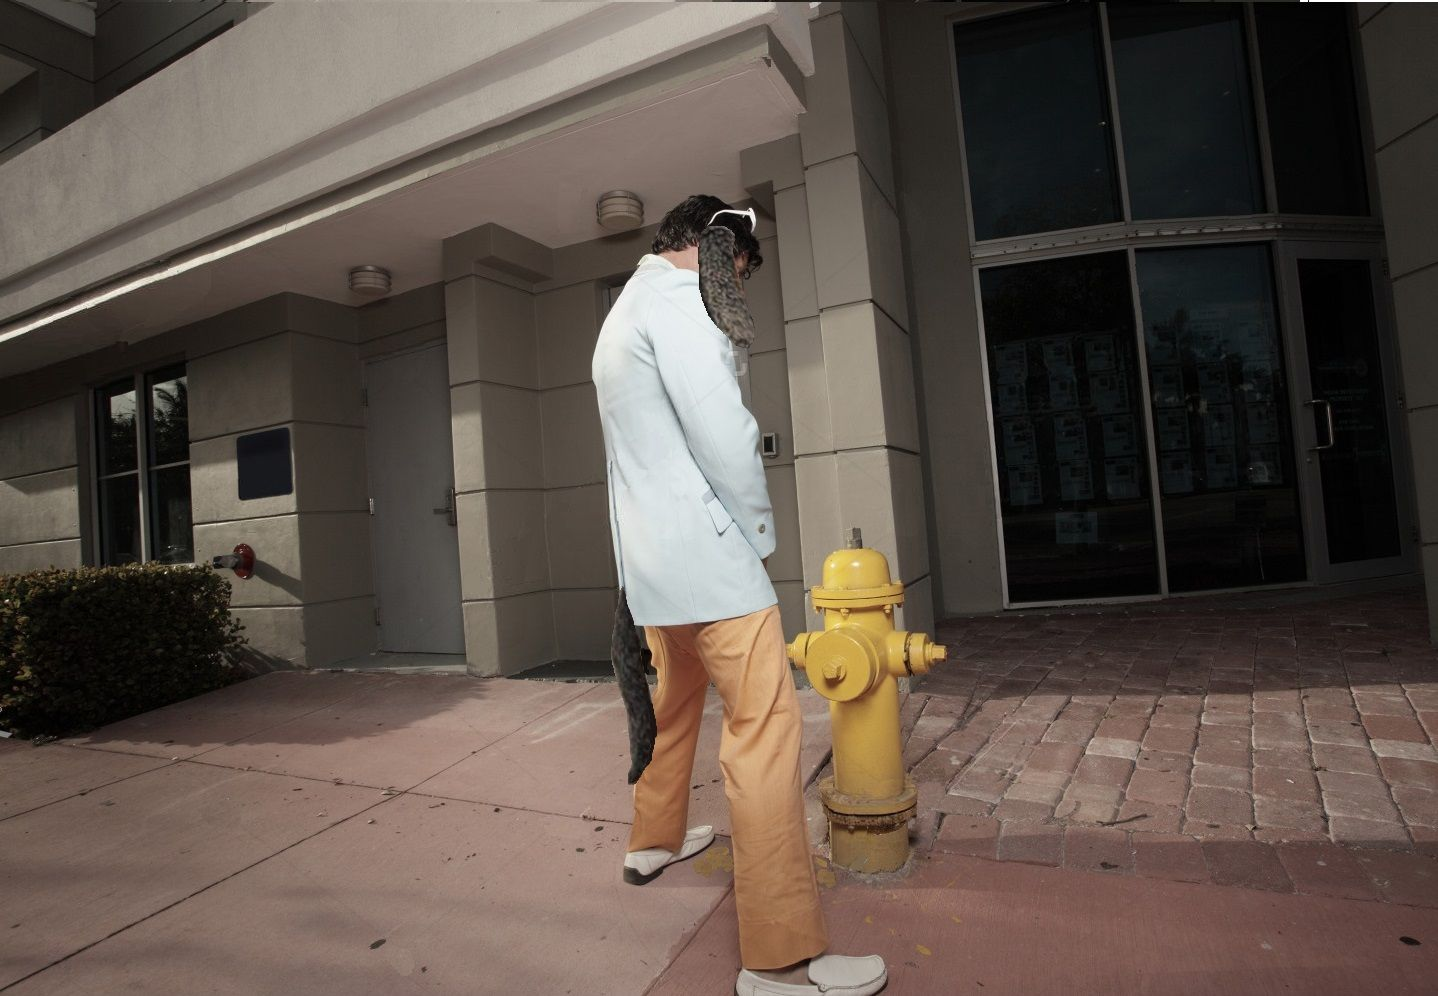 man peeing on fire hydrant